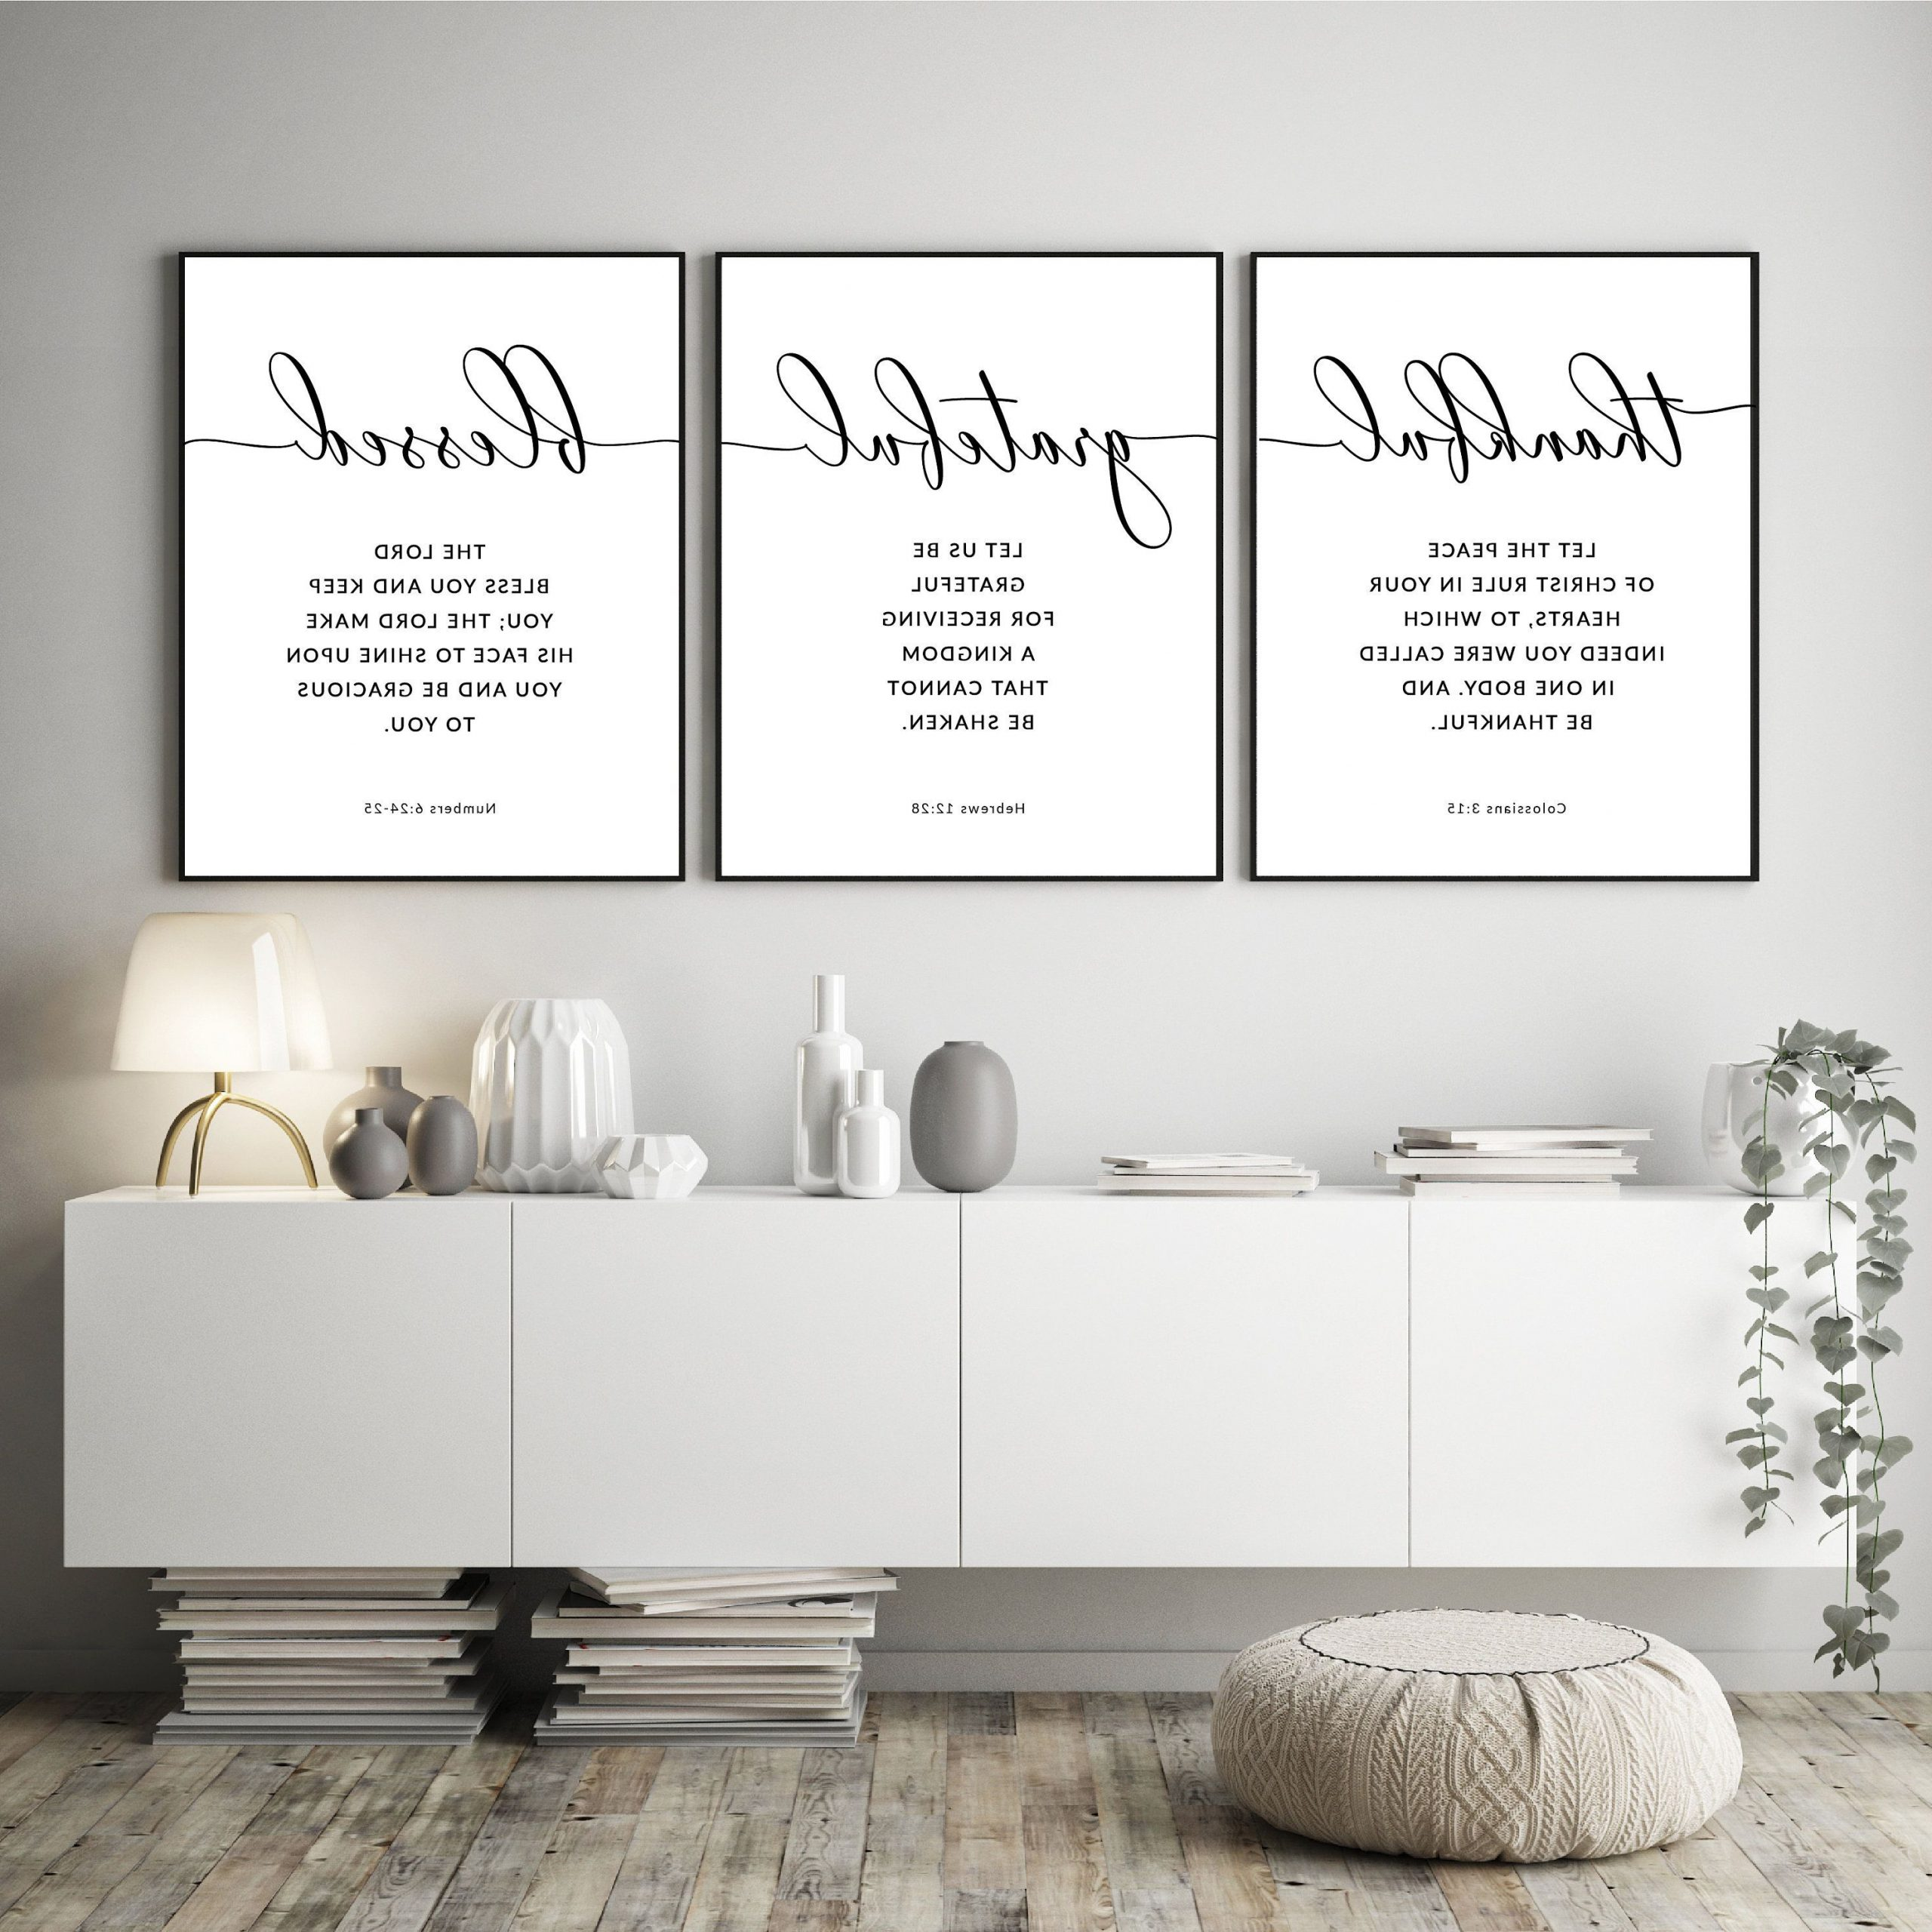 Thankful Grateful Blessed Bible Verse Printable Wall Art With Regard To 2019 Grateful, Thankful, Blessed Wall Decor (View 4 of 20)